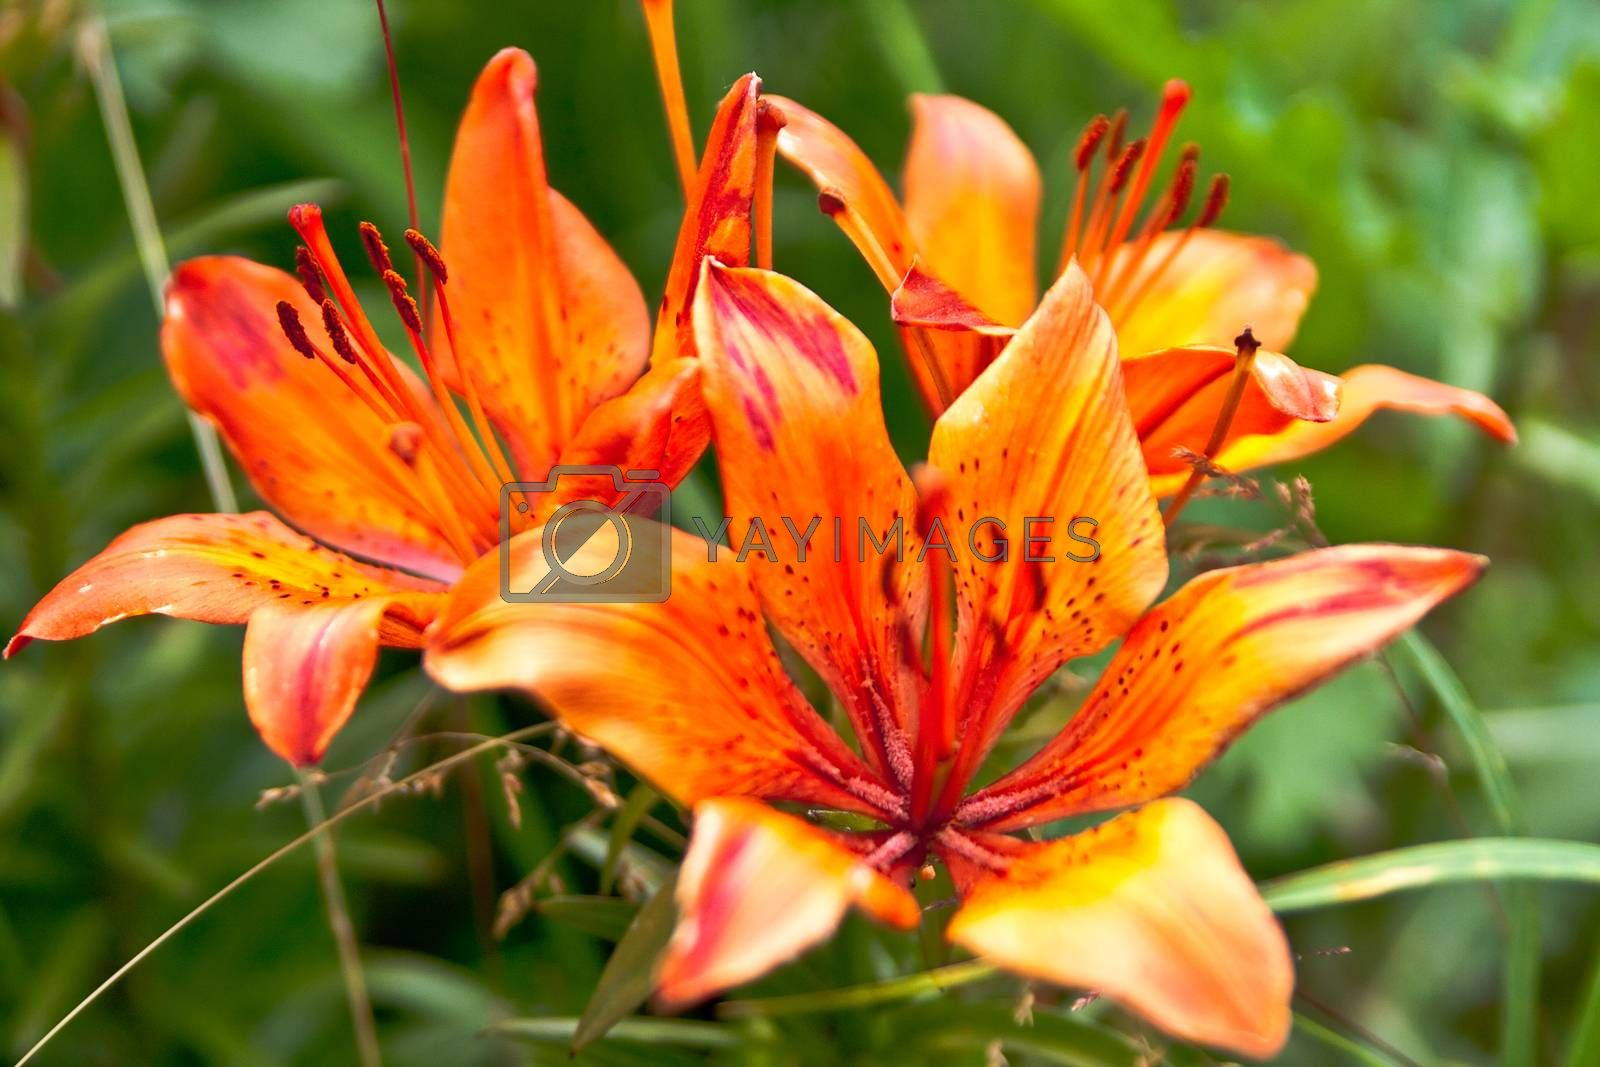 Royalty free image of Lilies by Stavrida